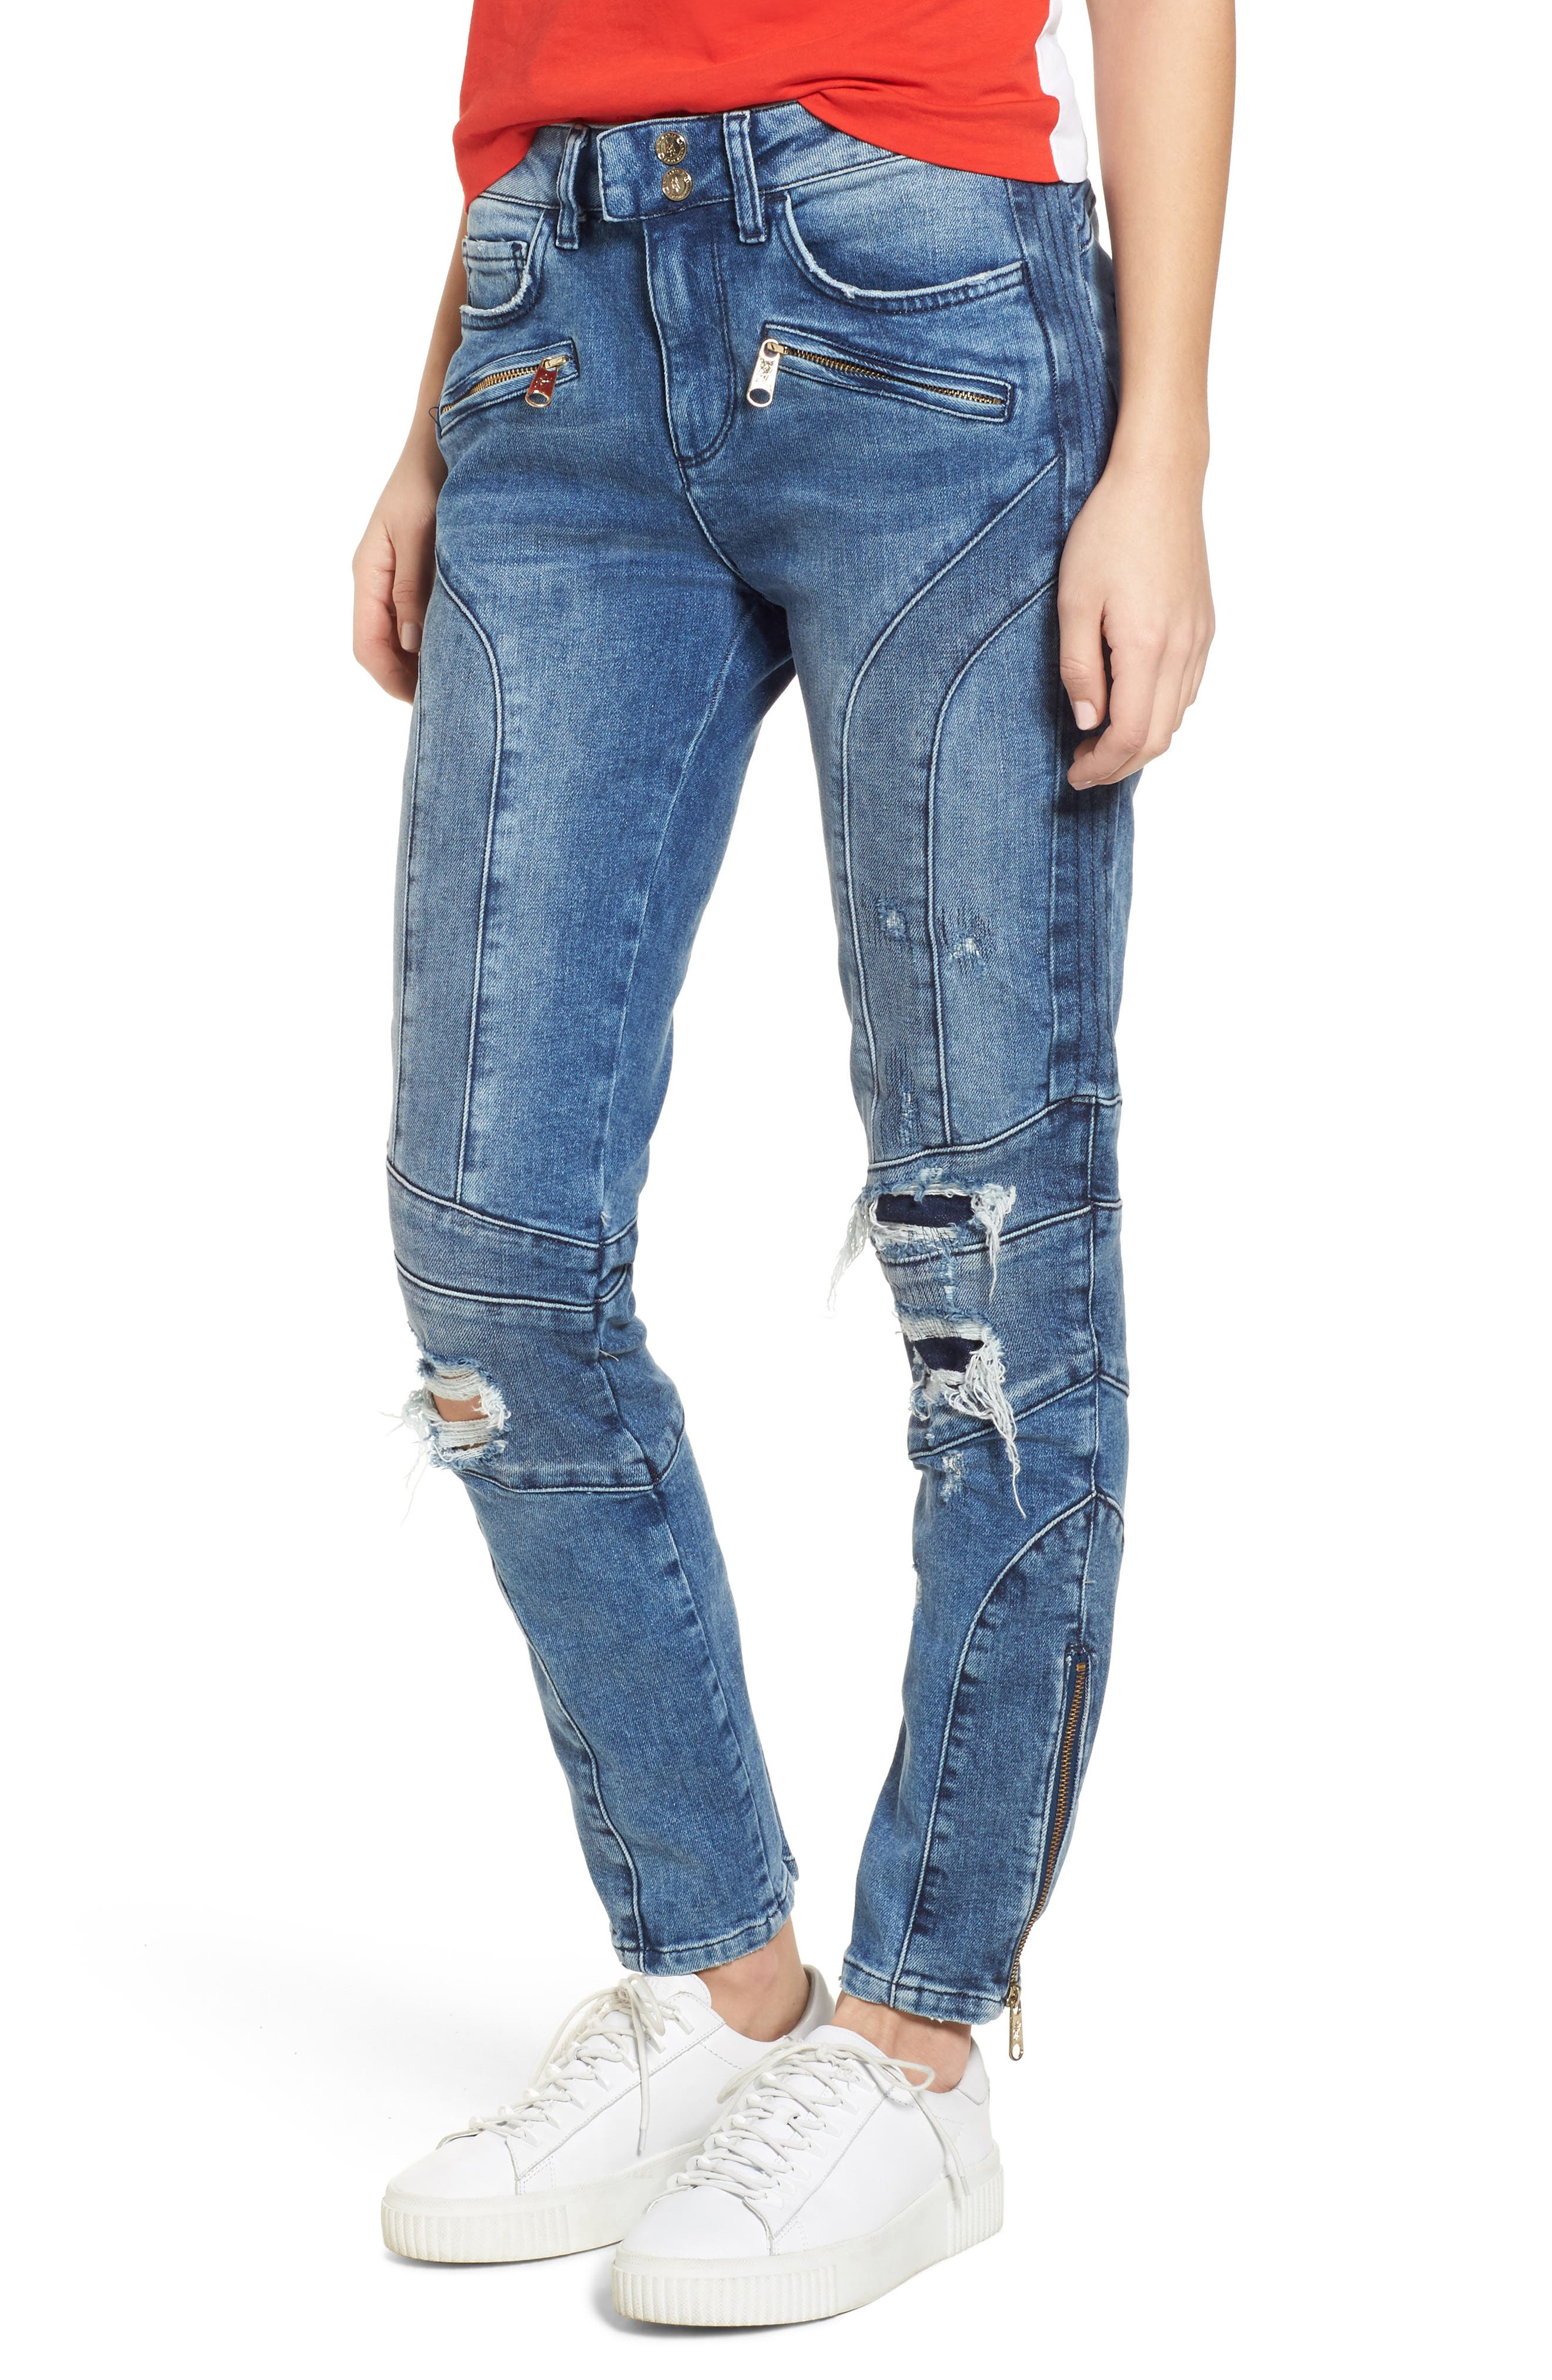 x Gigi Hadid Speed Distressed Ankle Zip Jeans,                             Main thumbnail 1, color,                             Mid Blue